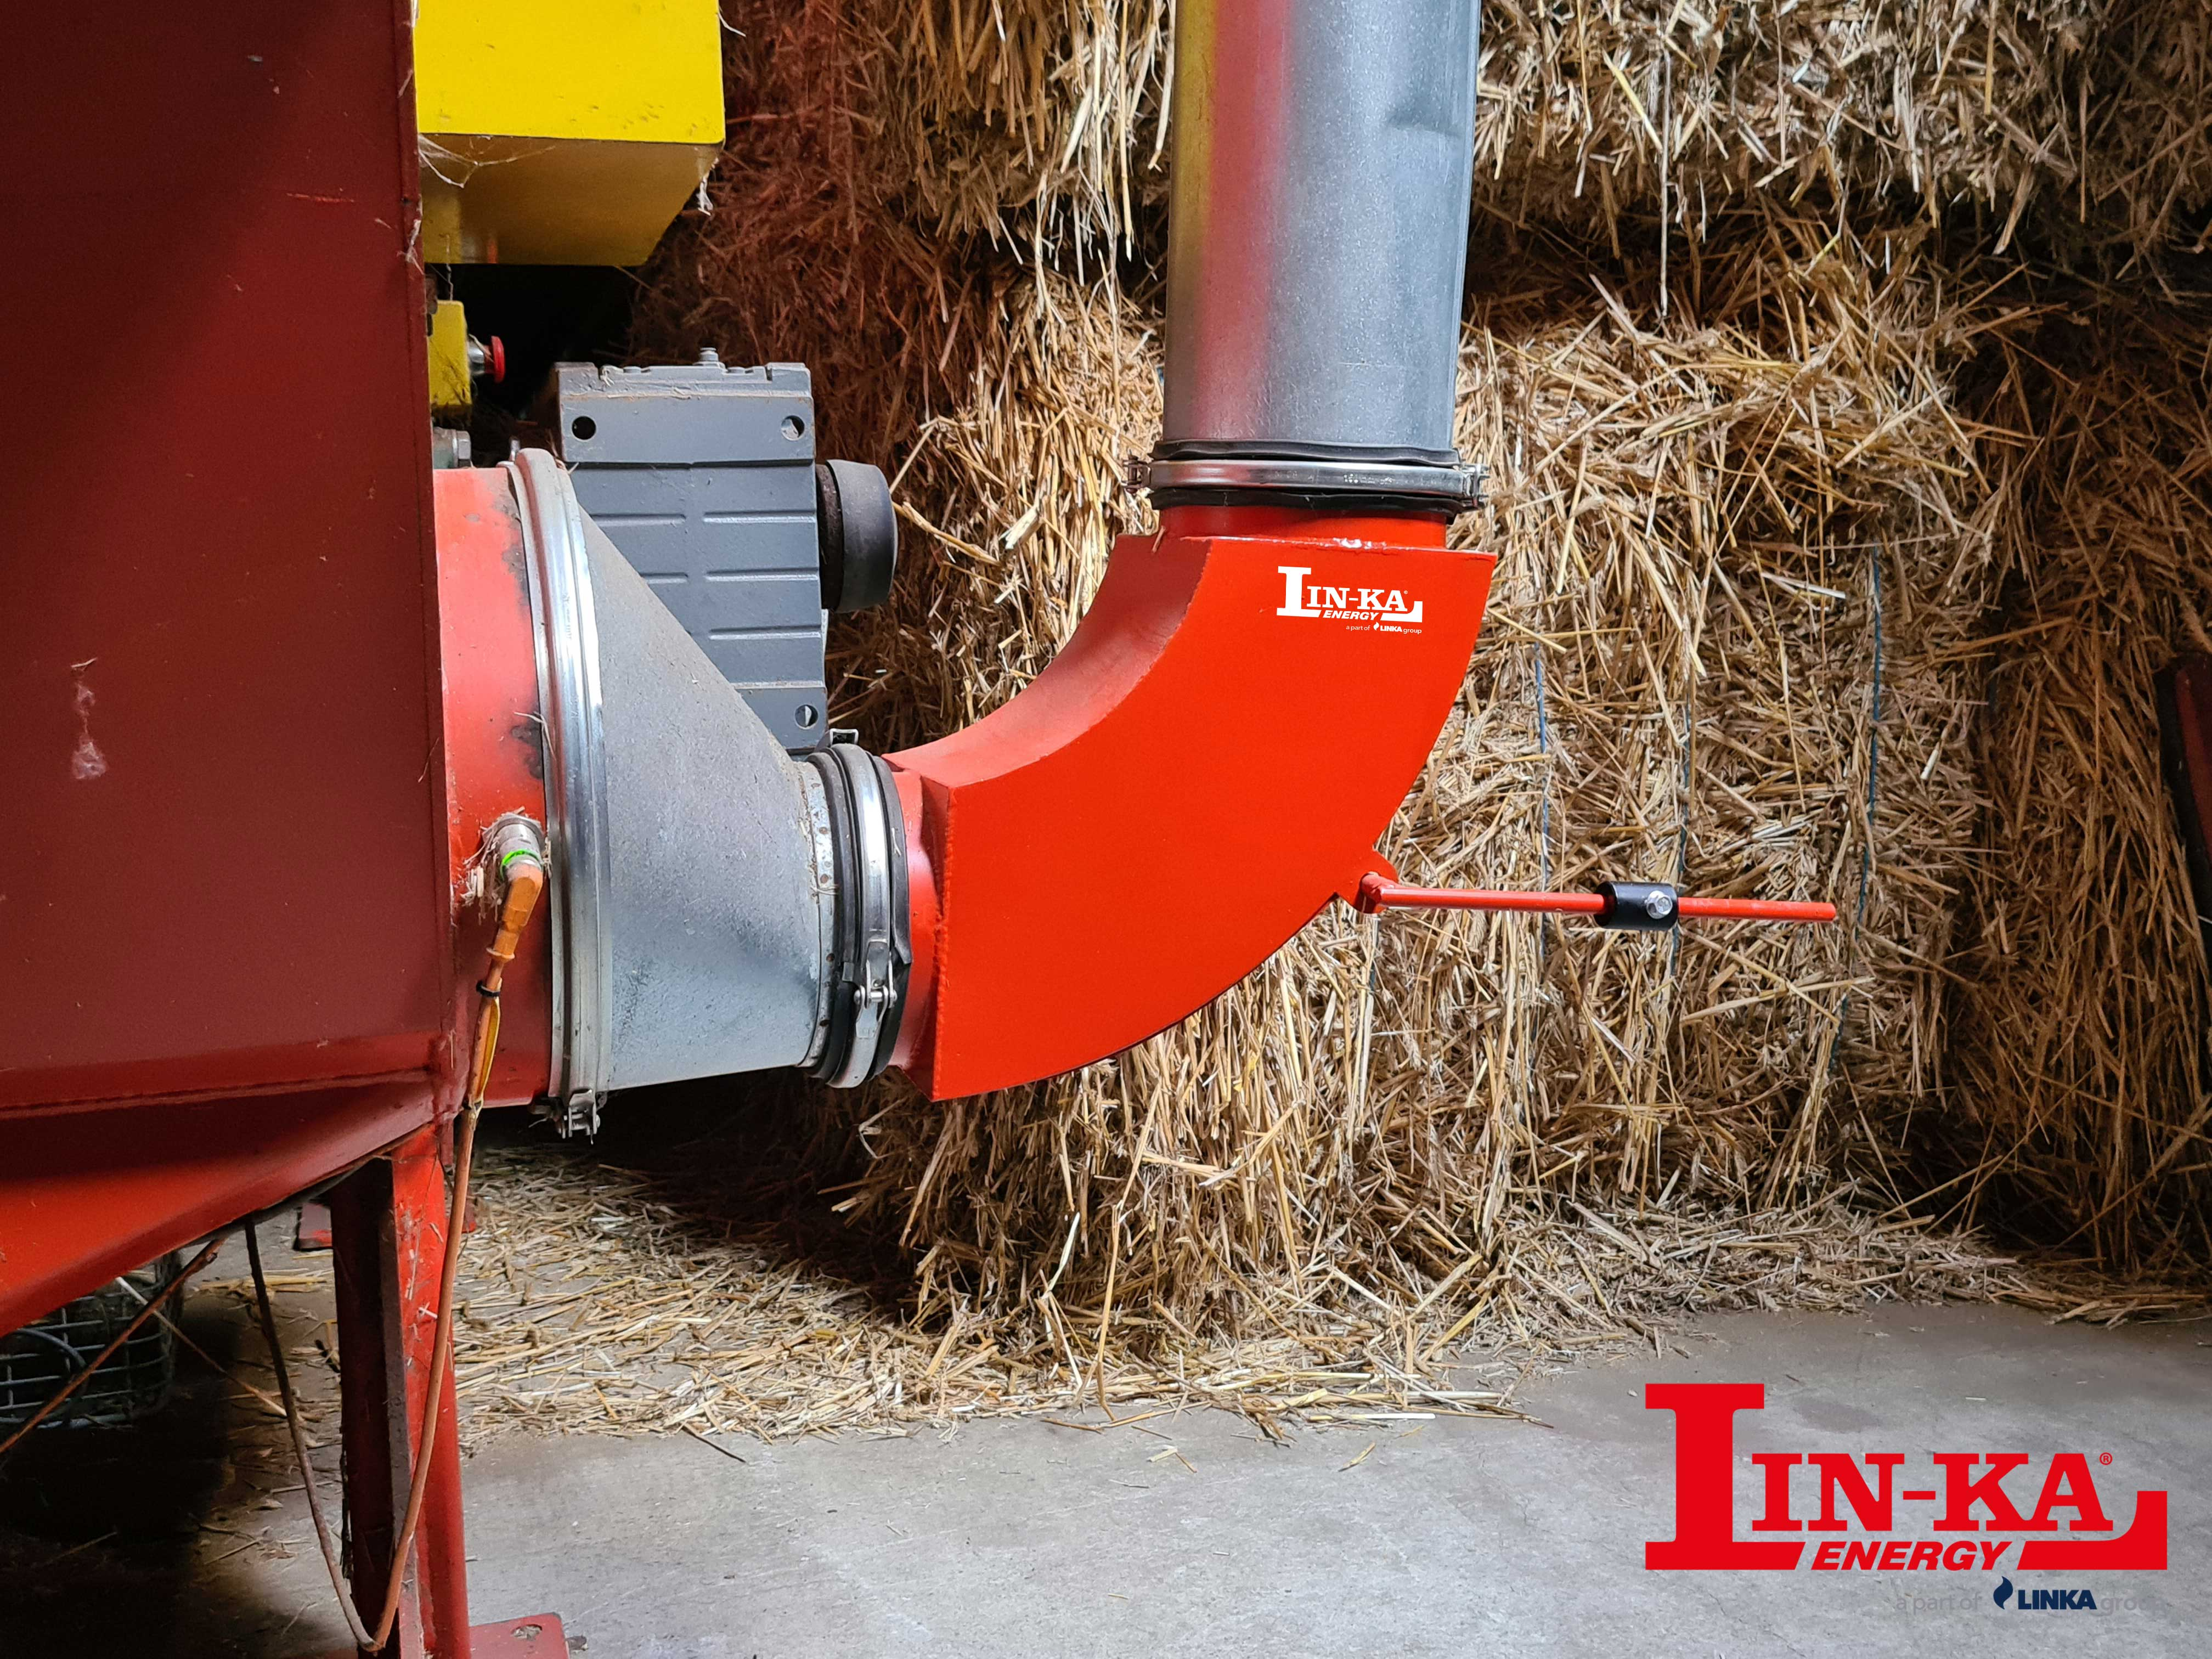 Stone separator - A conversion kit that sorts unwanted stones from the straw